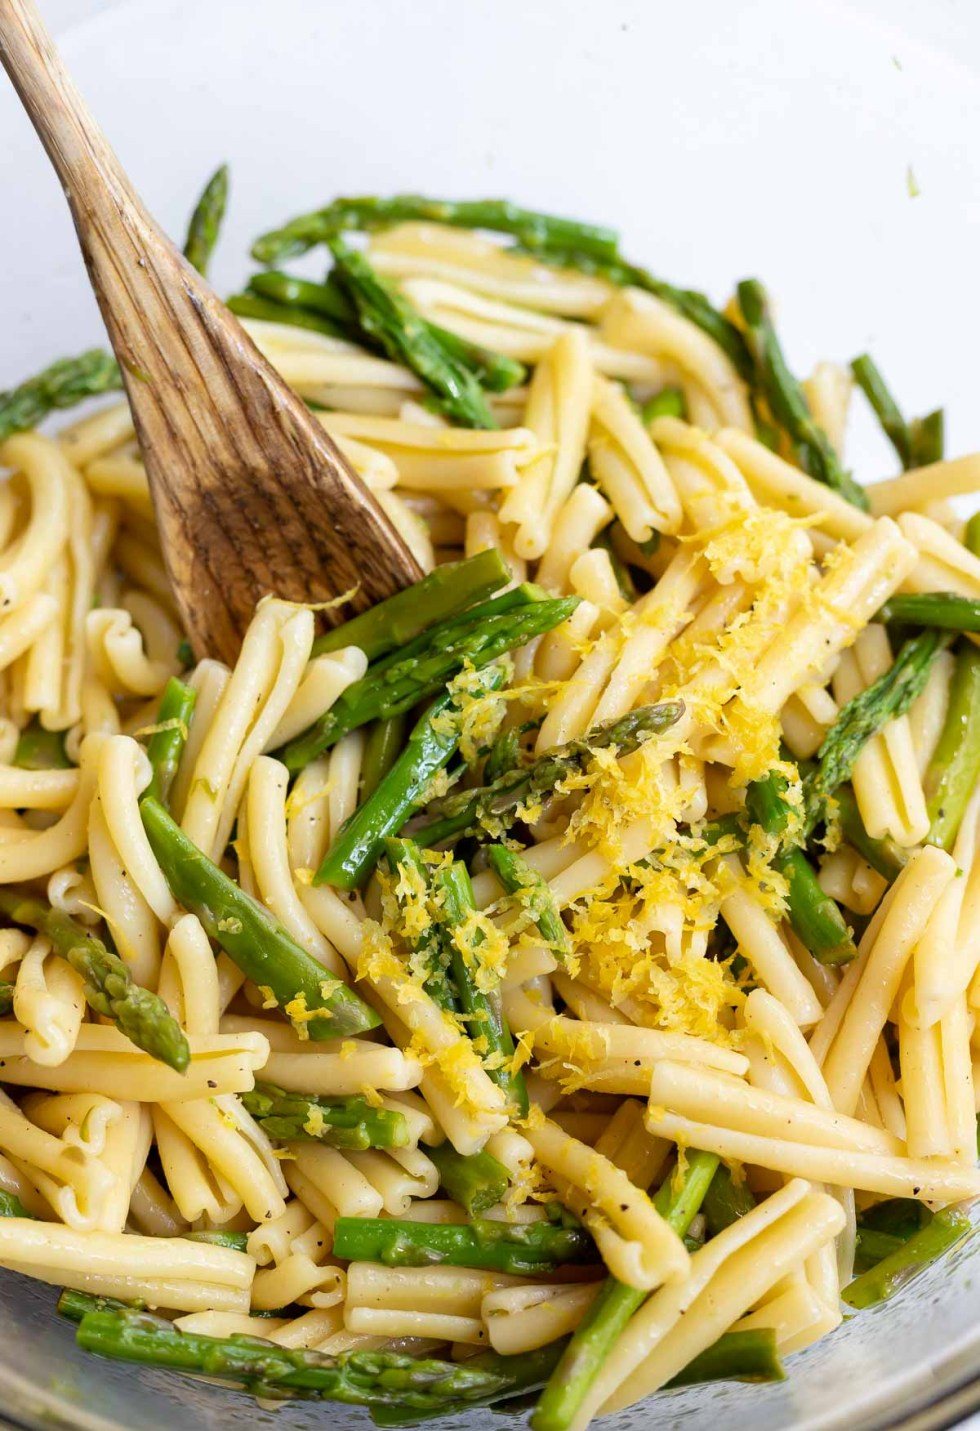 asparagus and pasta in clear bowl